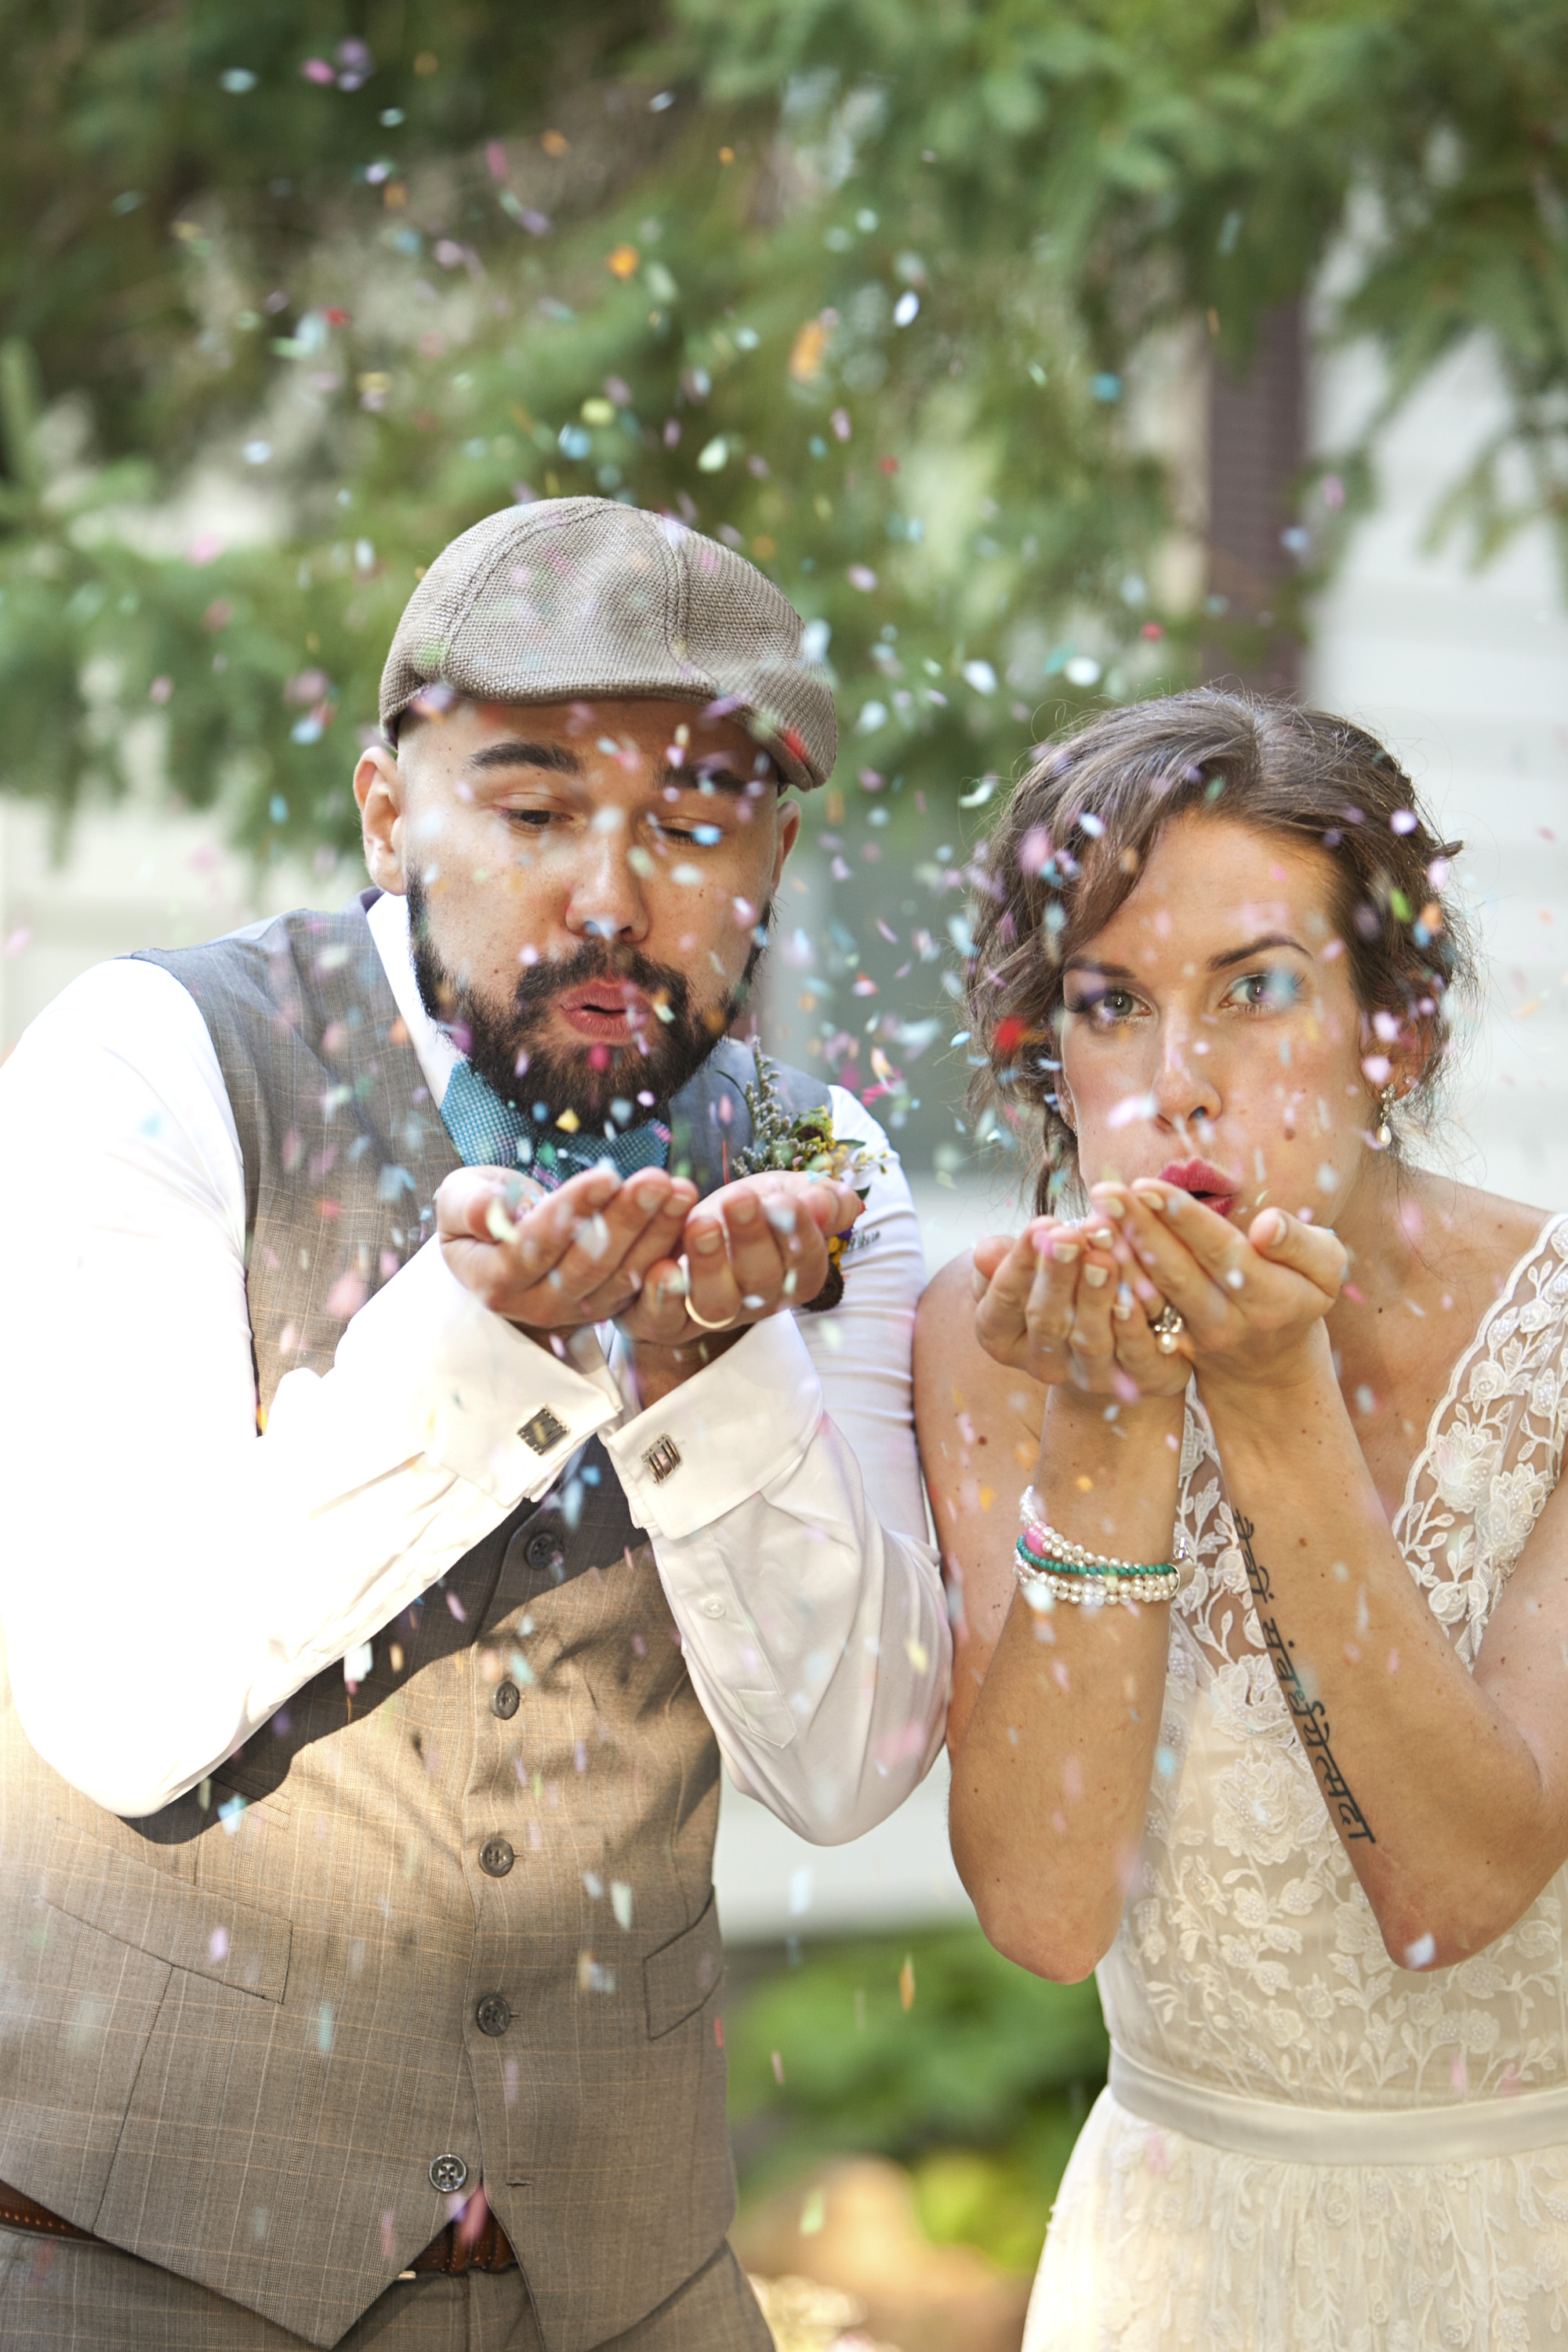 Bride and groom blowing confetti